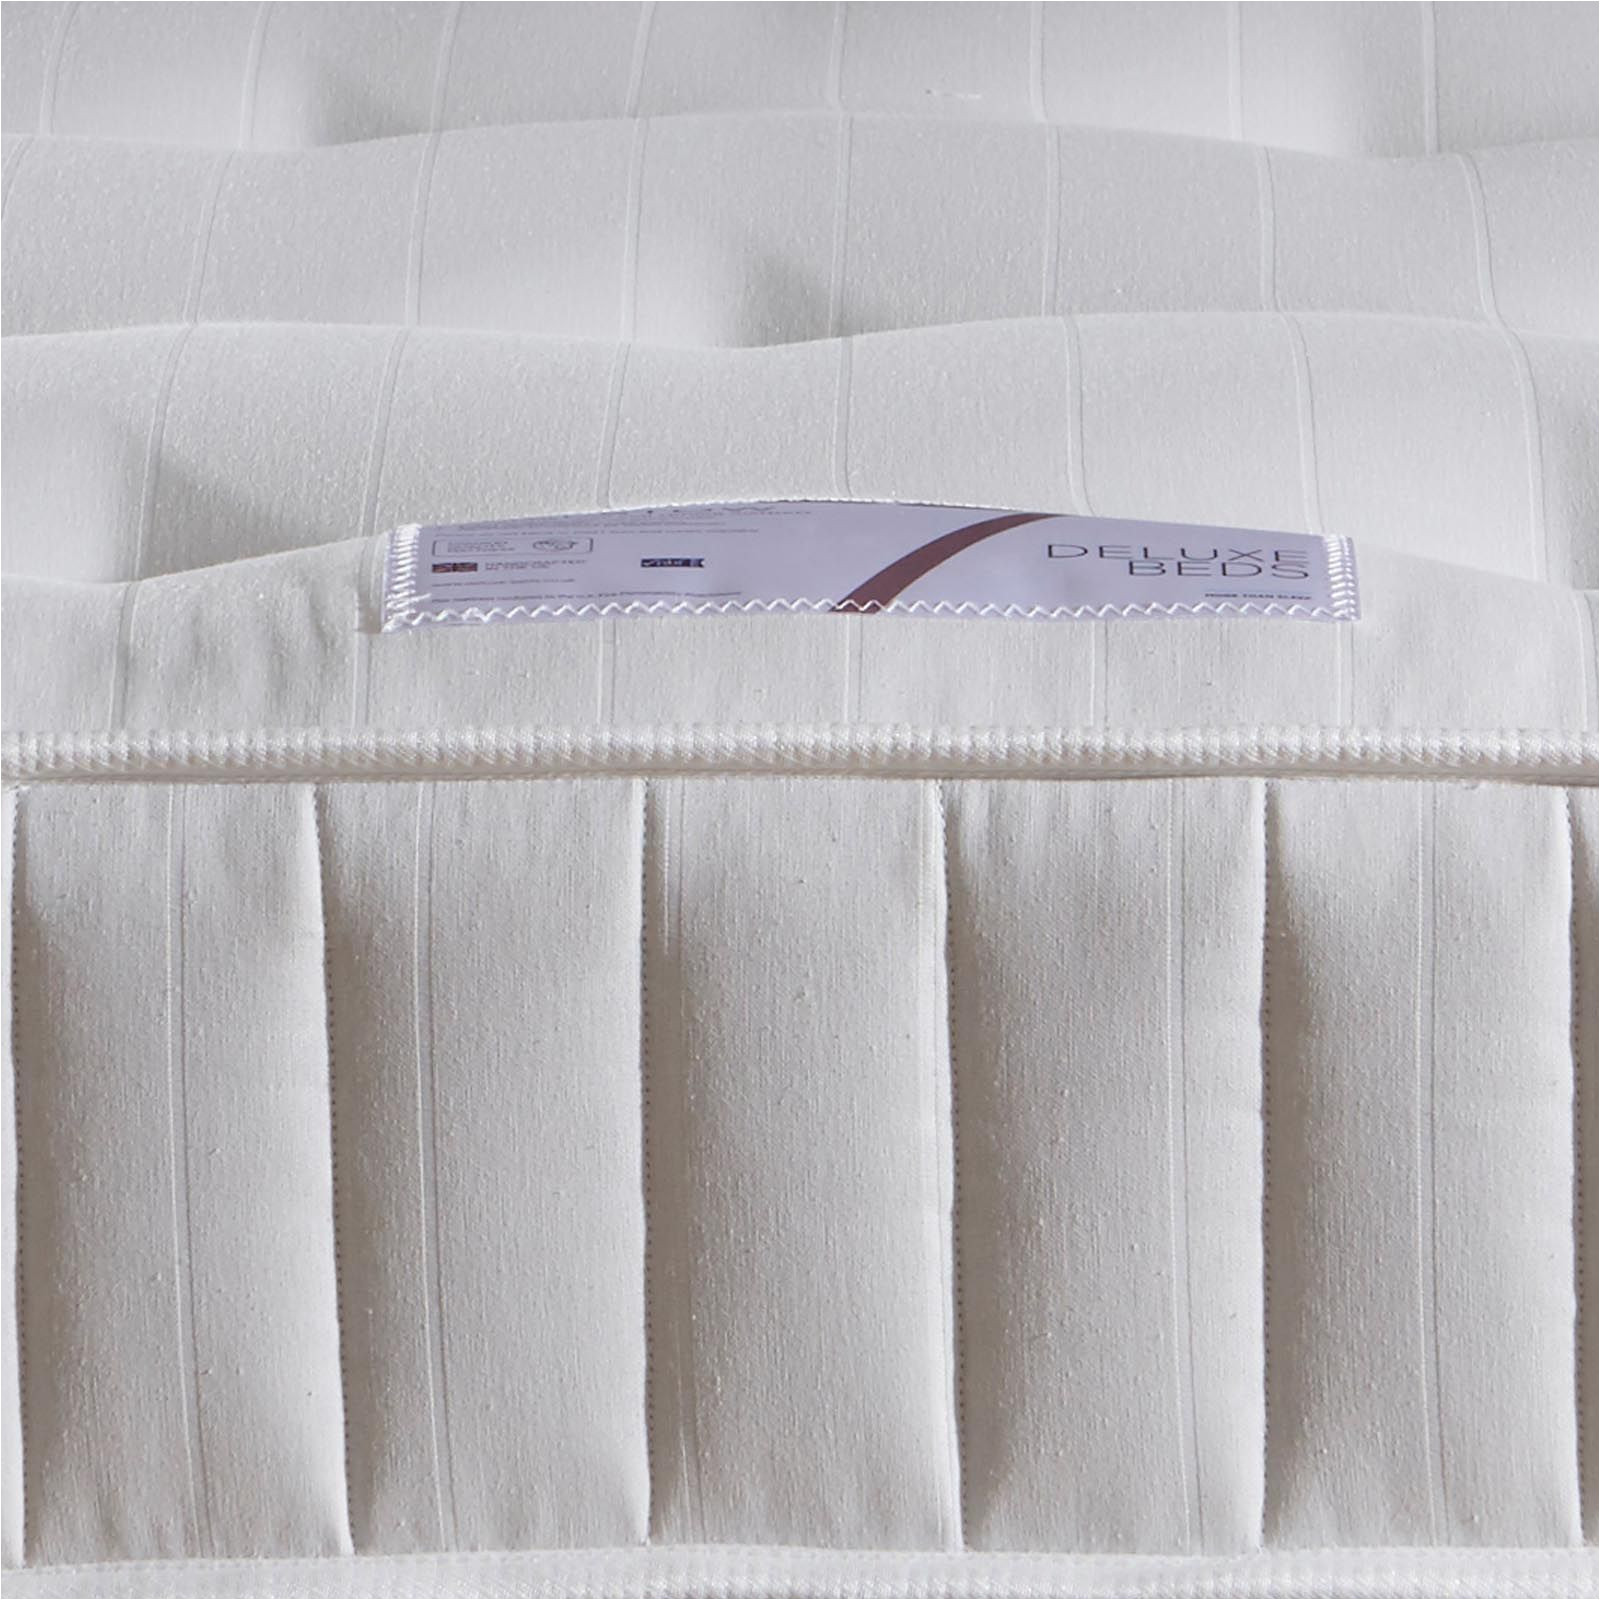 a premium medium to firm mattress using agro open coil springs combined with luxurious polyester